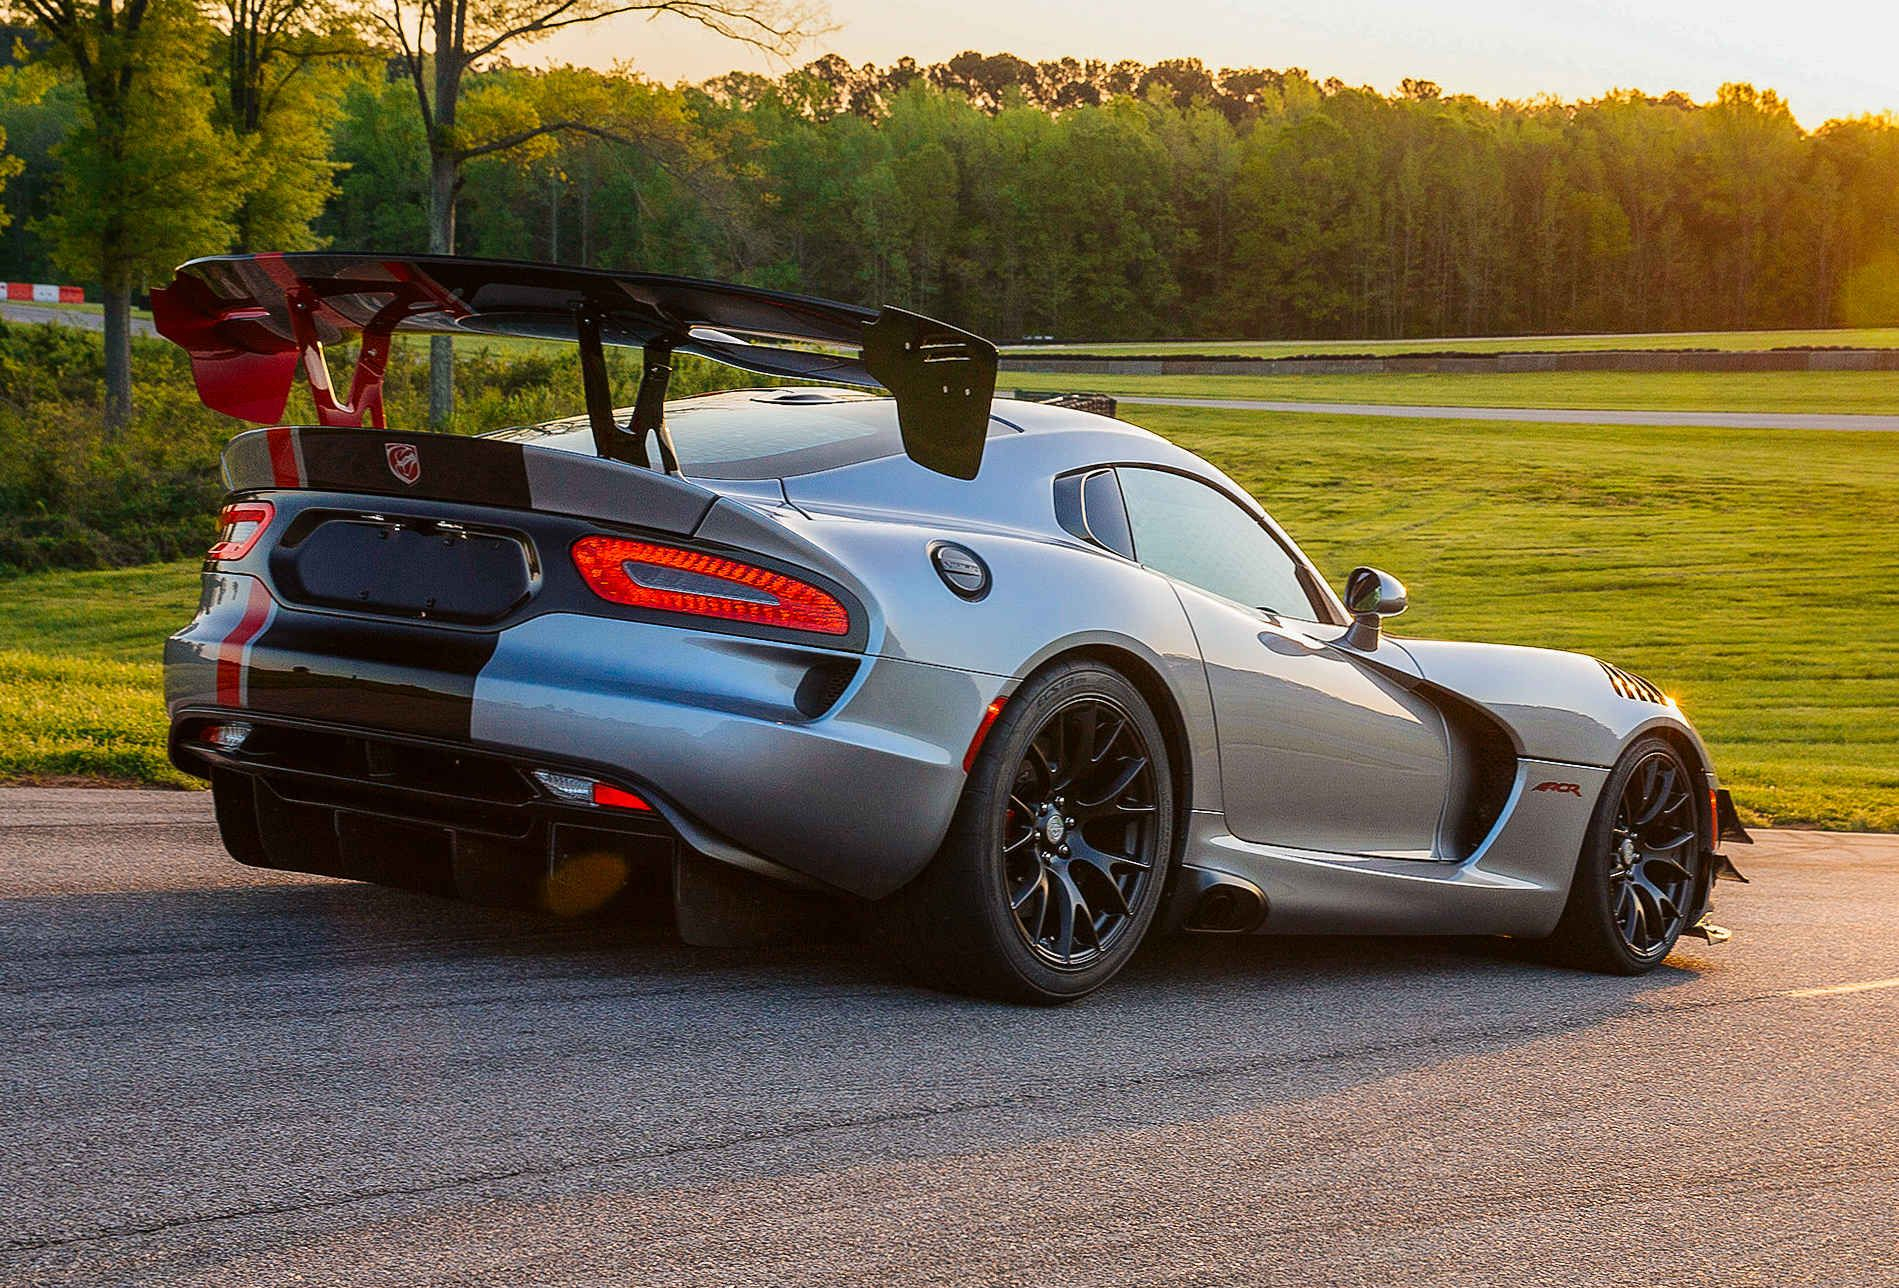 The Intimidating Viper Acr Is Somehow Street Legal Dodge Viper Viper Acr 2016 Dodge Viper